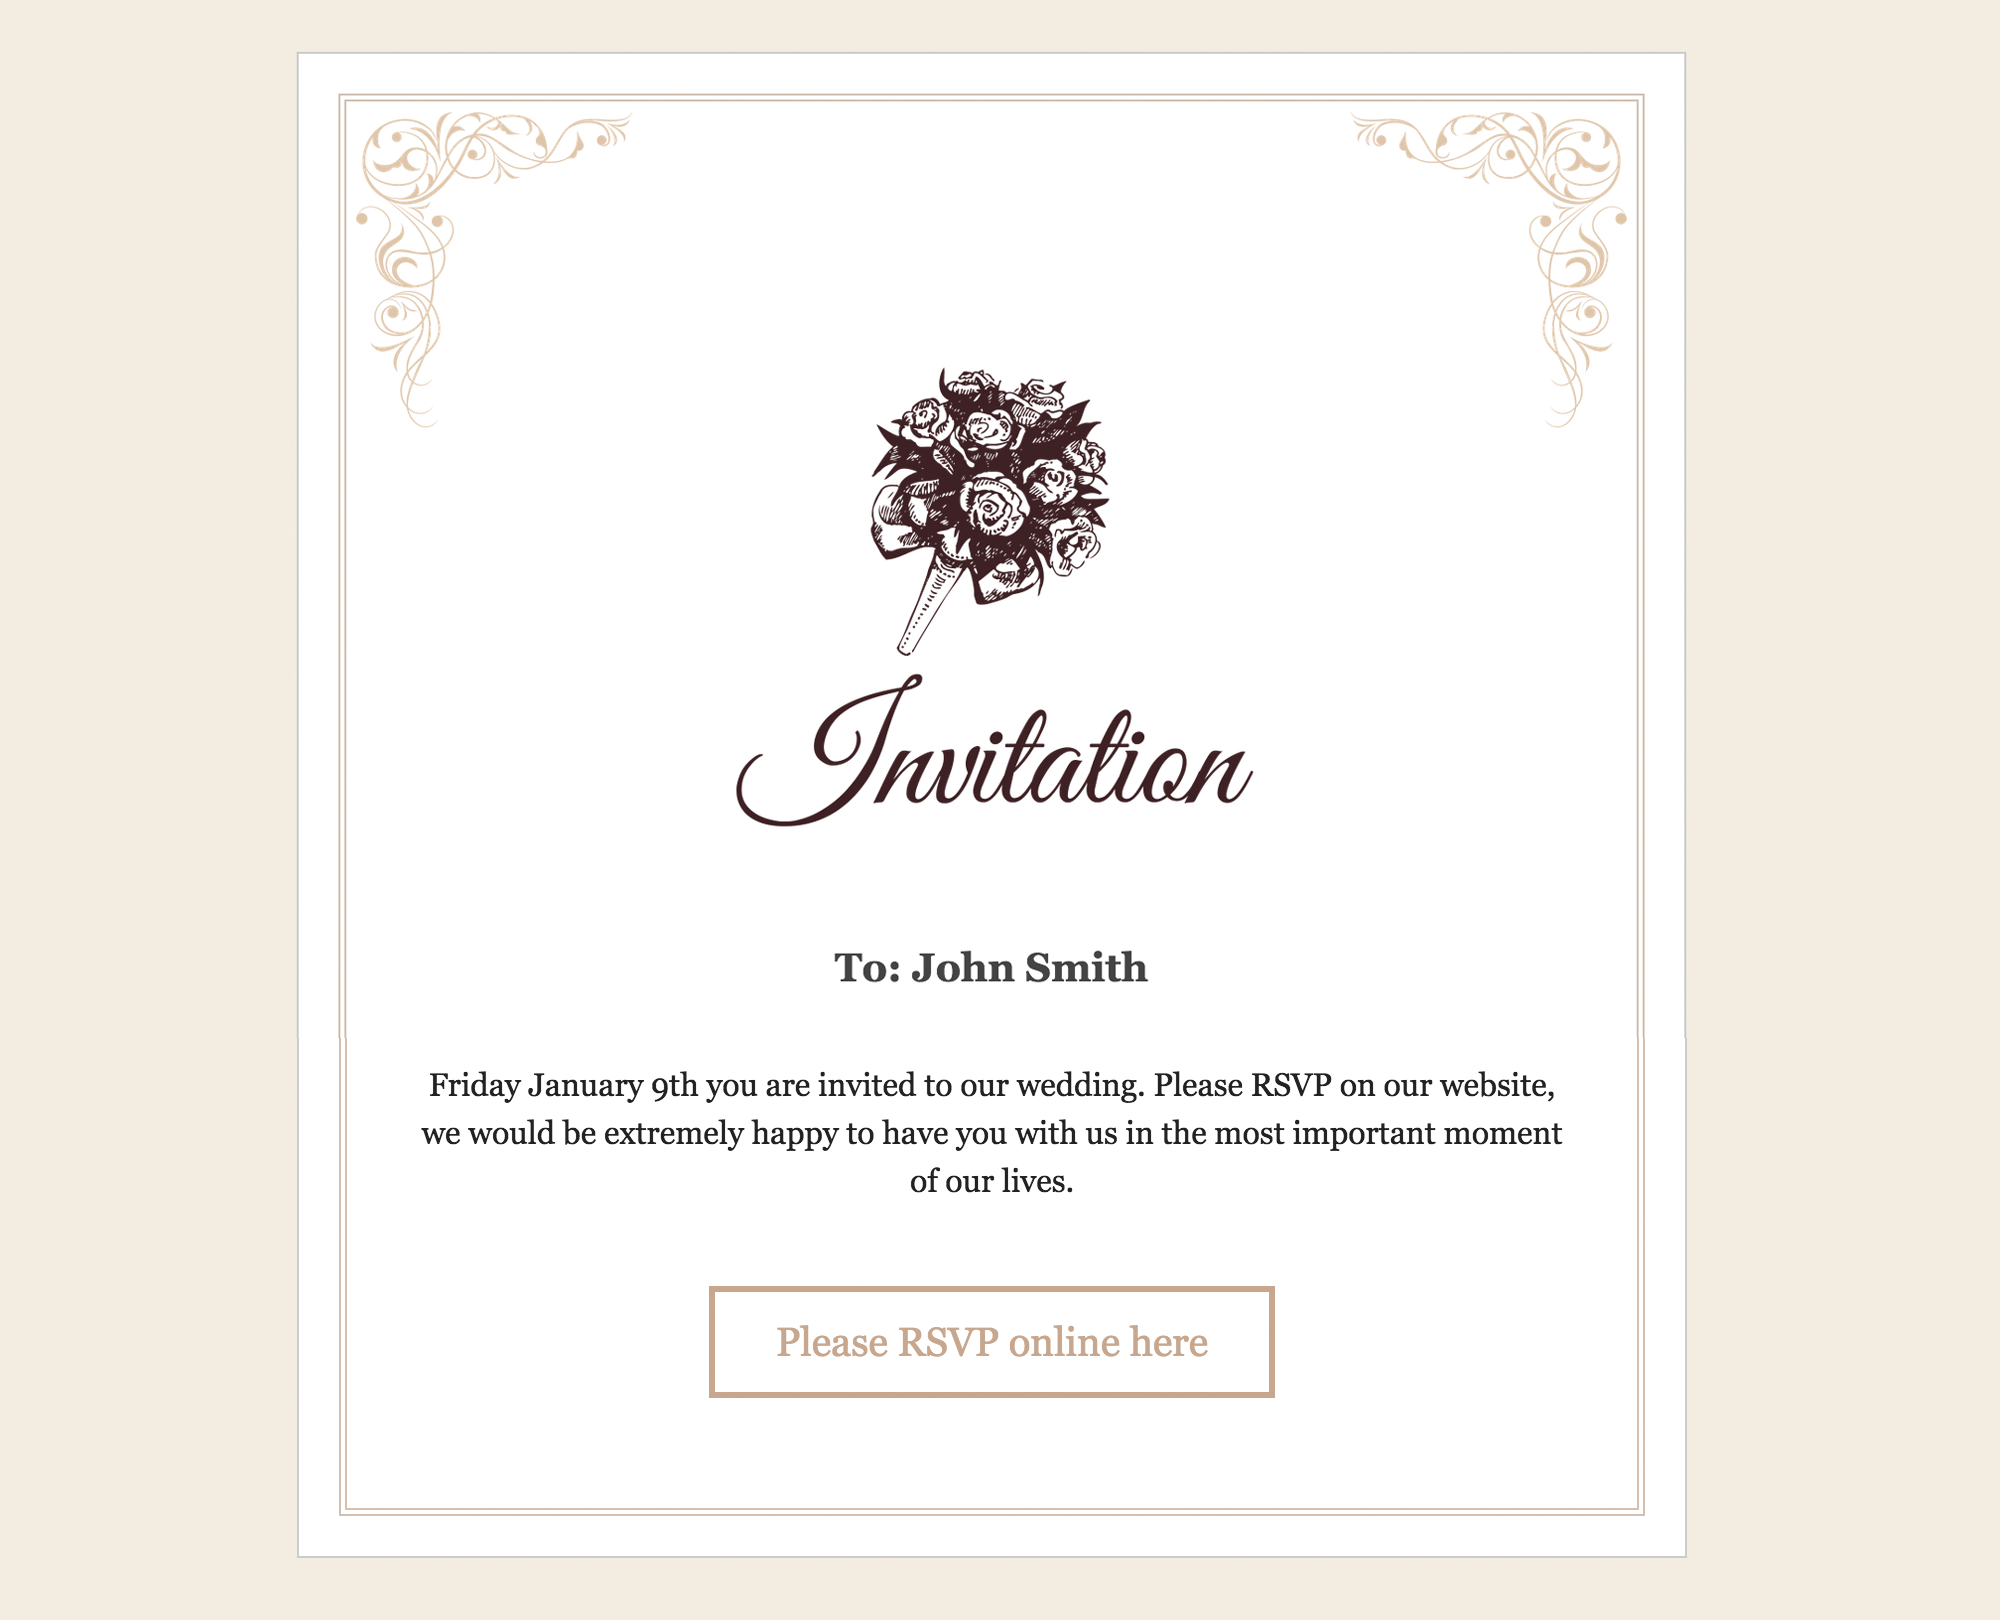 RSVP and Wedding Invitation WordPress Plugin by CraftedPixels ...